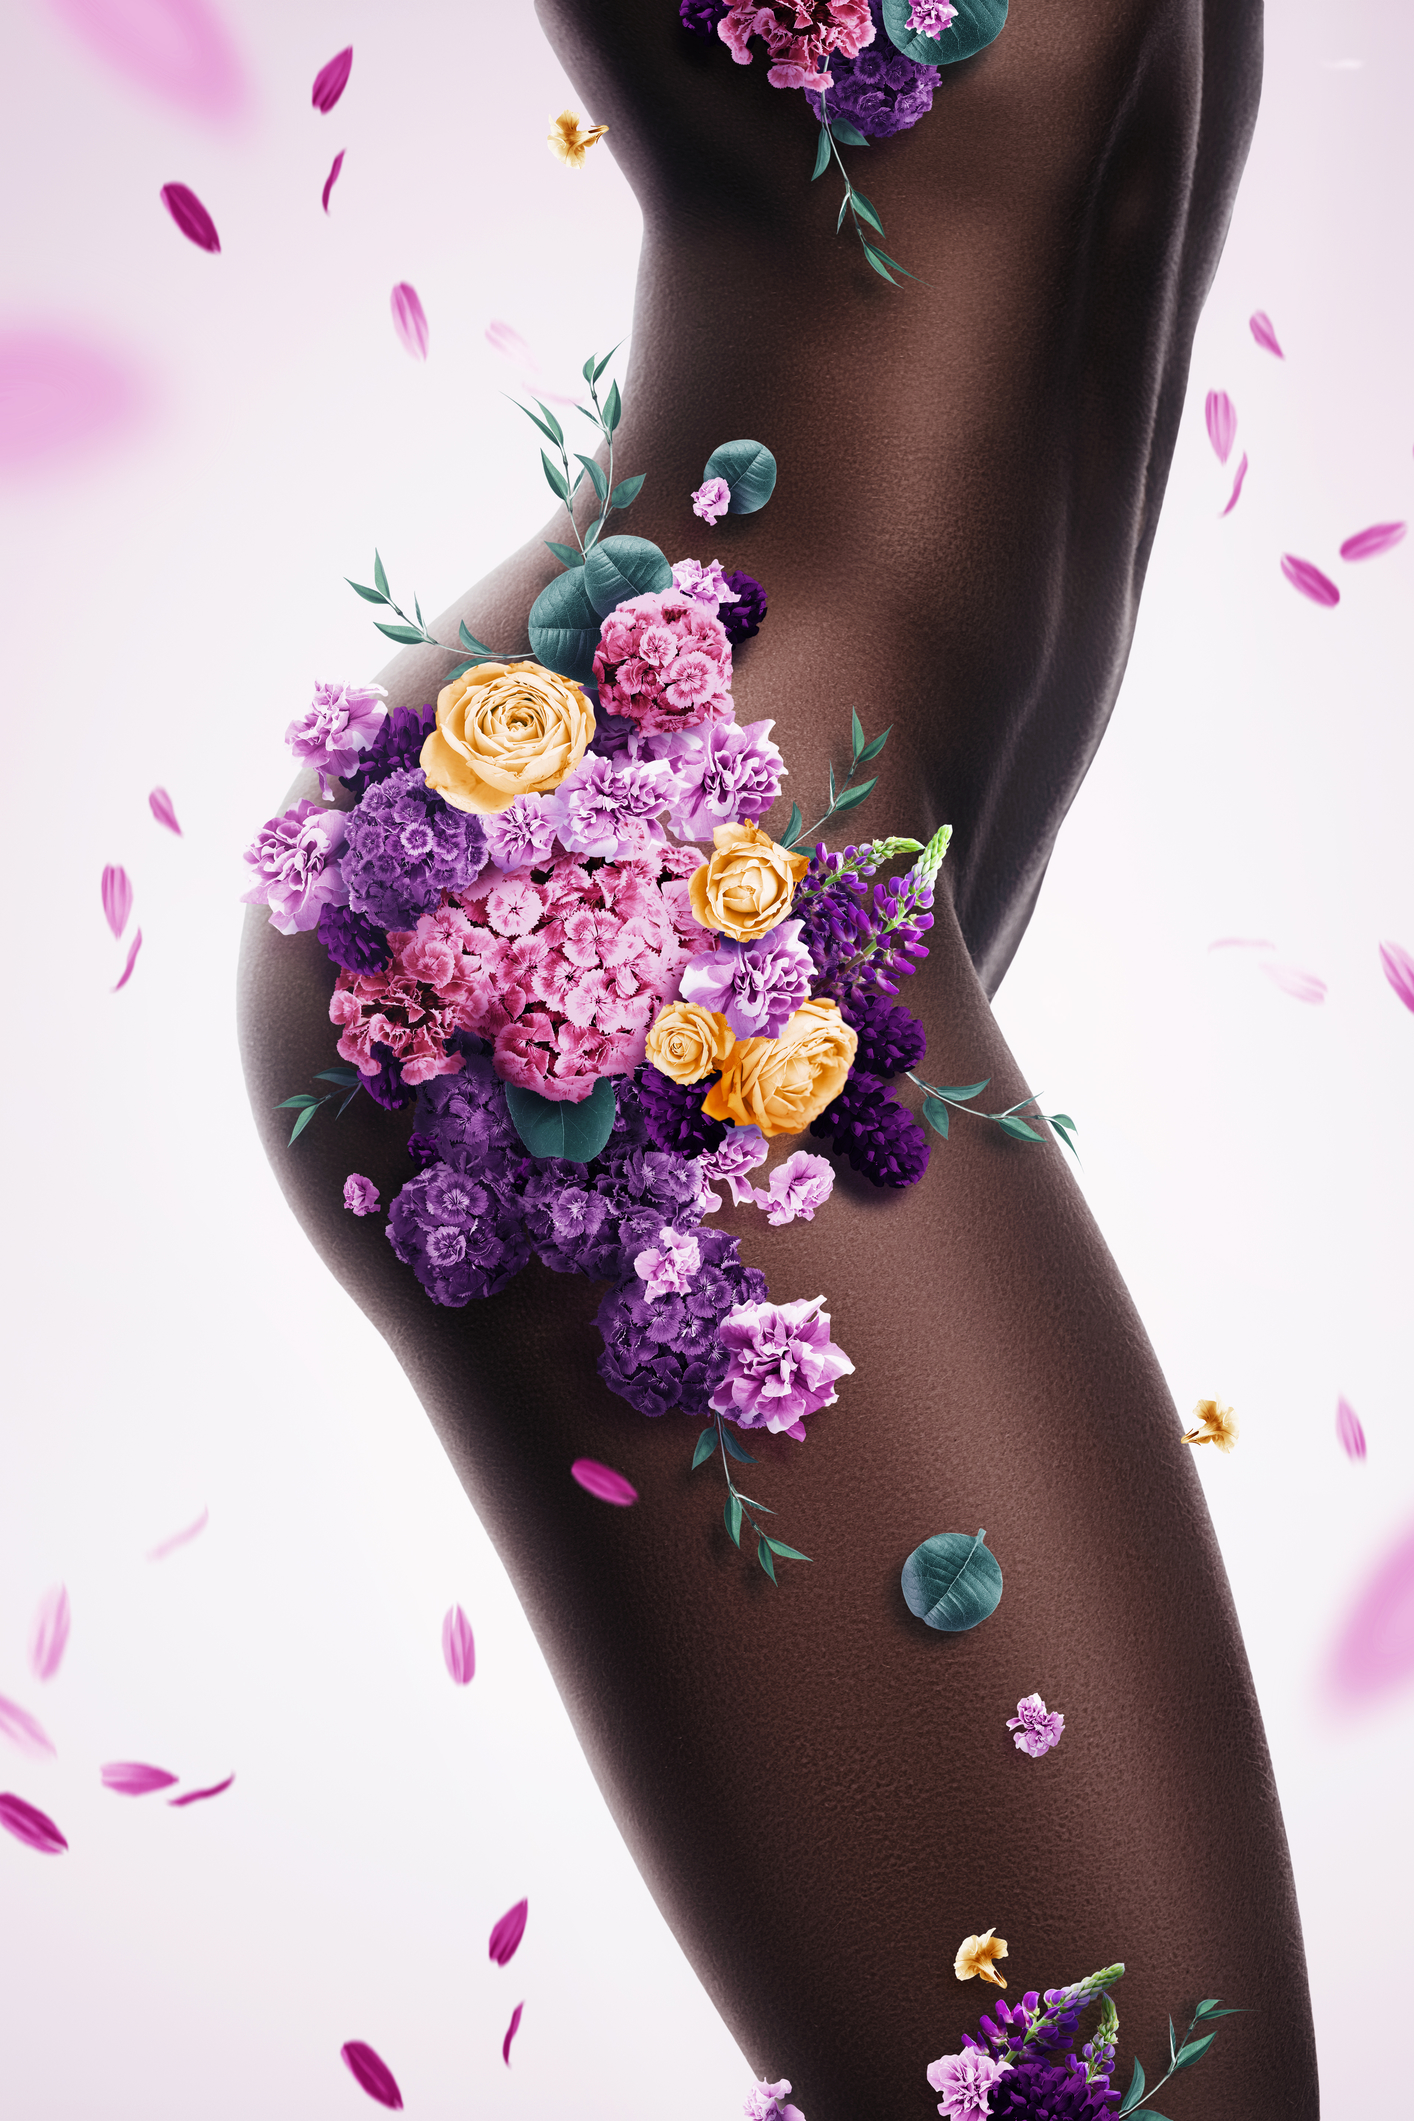 flowers on body.jpg